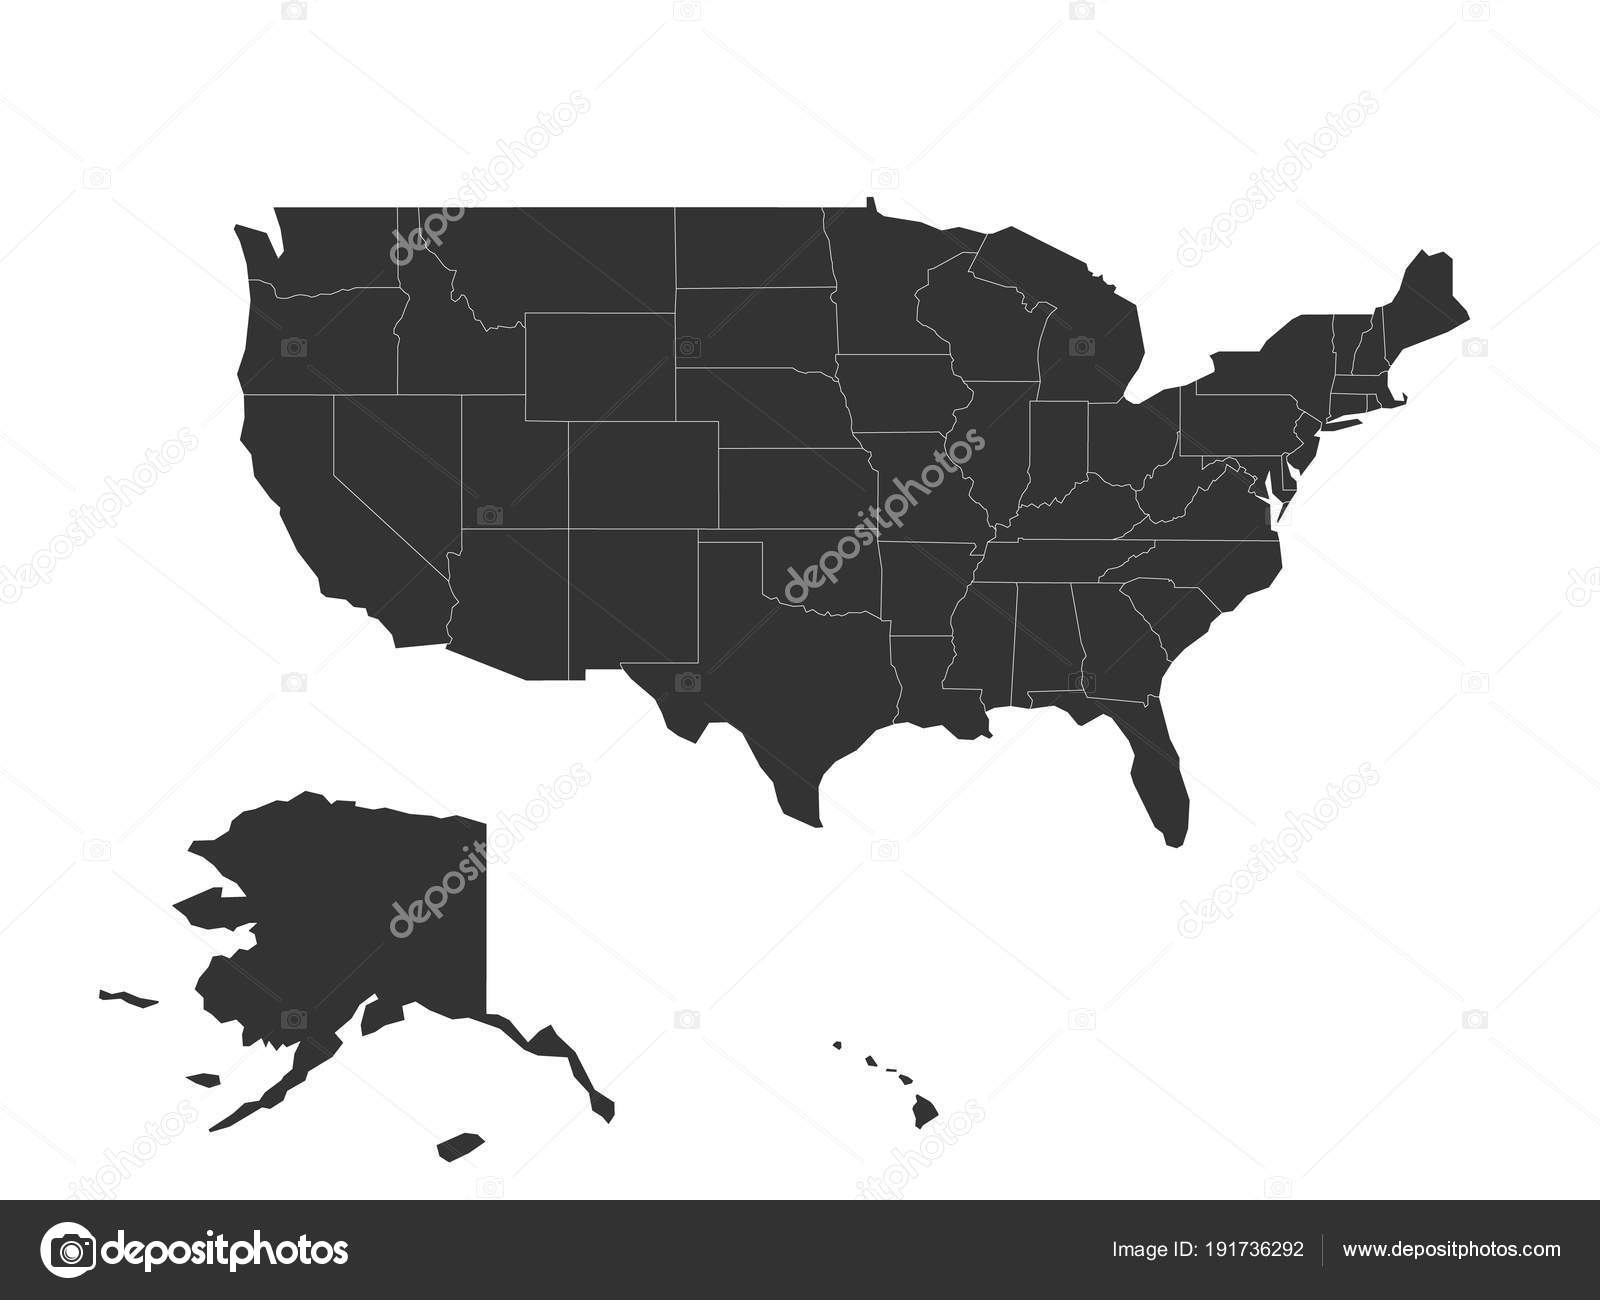 Picture: a blank map of the united states   Blank map of ... on empty island map, empty canada map, empty florida map, empty u.s. map, empty asia map, empty east coast map, empty pacific map, www.usa map, empty ny map, empty india map, empty mexico map, empty africa map, empty continent map, empty america map, empty italy map, empty quarter map, empty egypt map, empty europe map, empty map of the caribbean, empty georgia map,